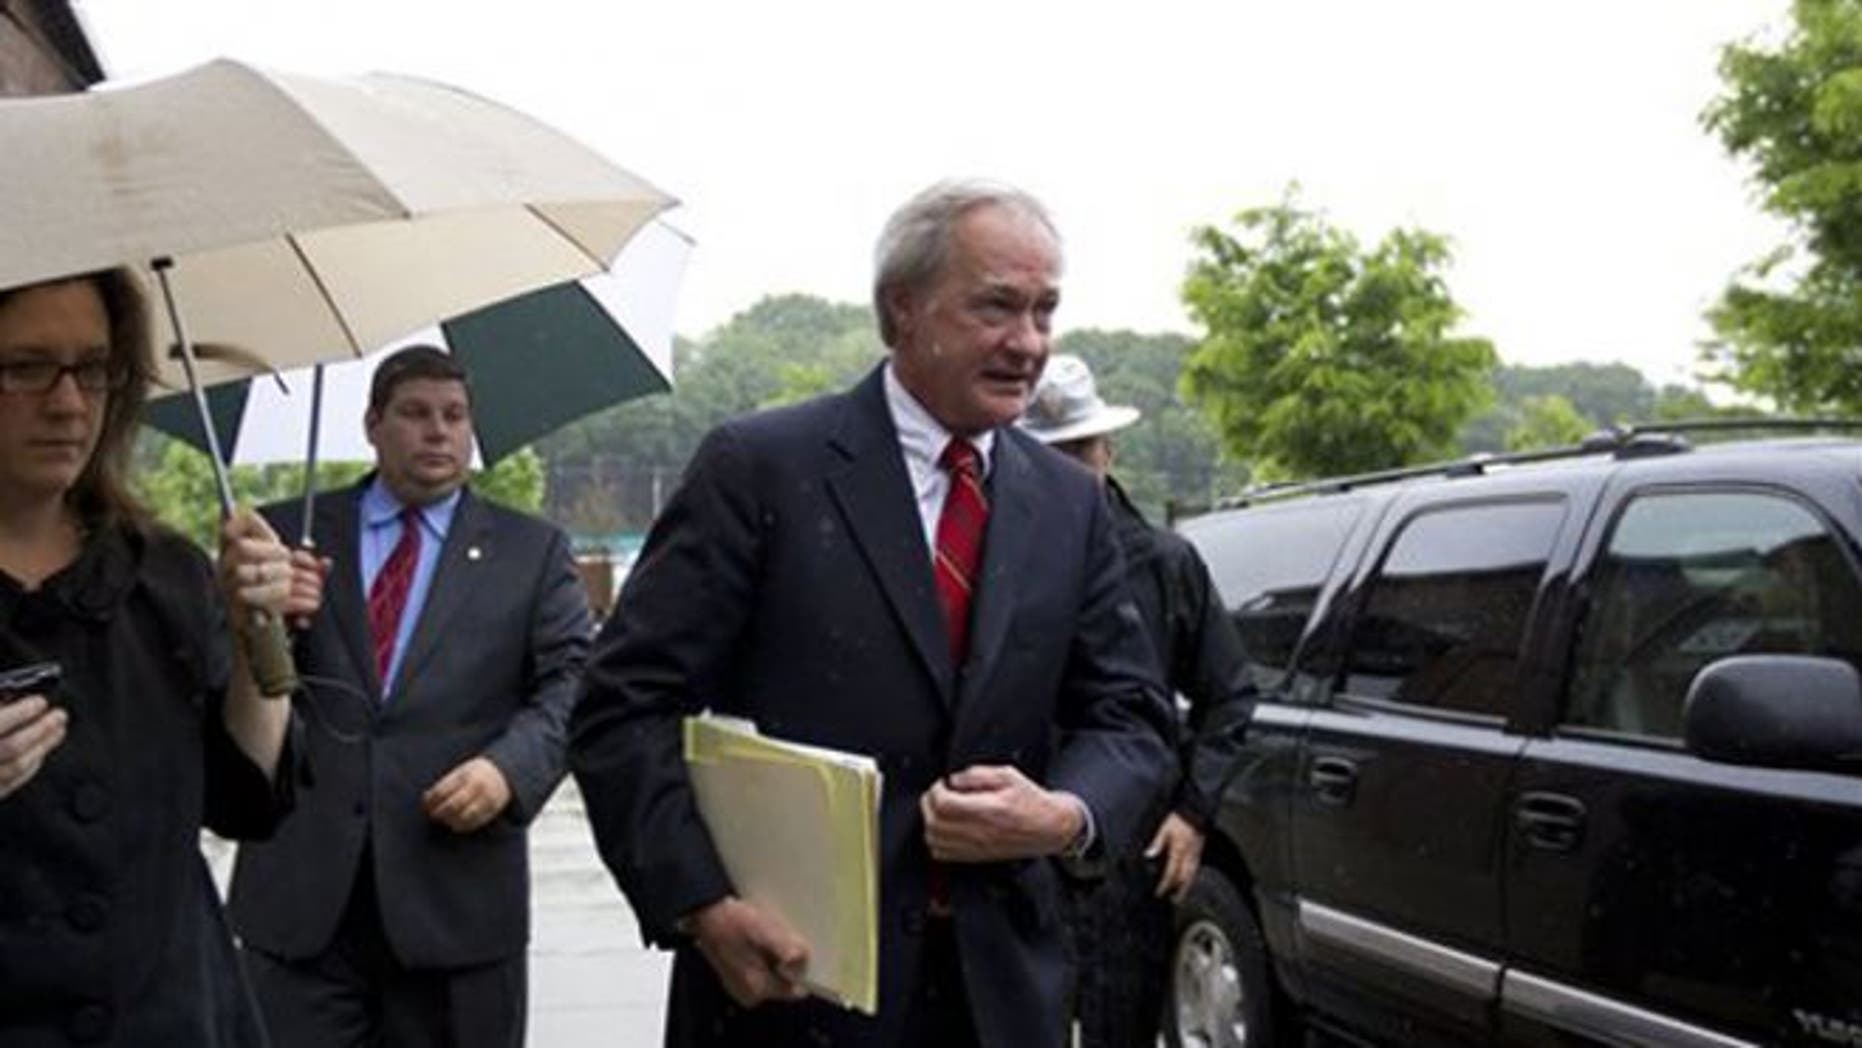 May 21, 2012: Rhode Island Gov. Lincoln Chafee, center, arrives at the state's Economic Development Corp. headquarters in Providence, R.I.